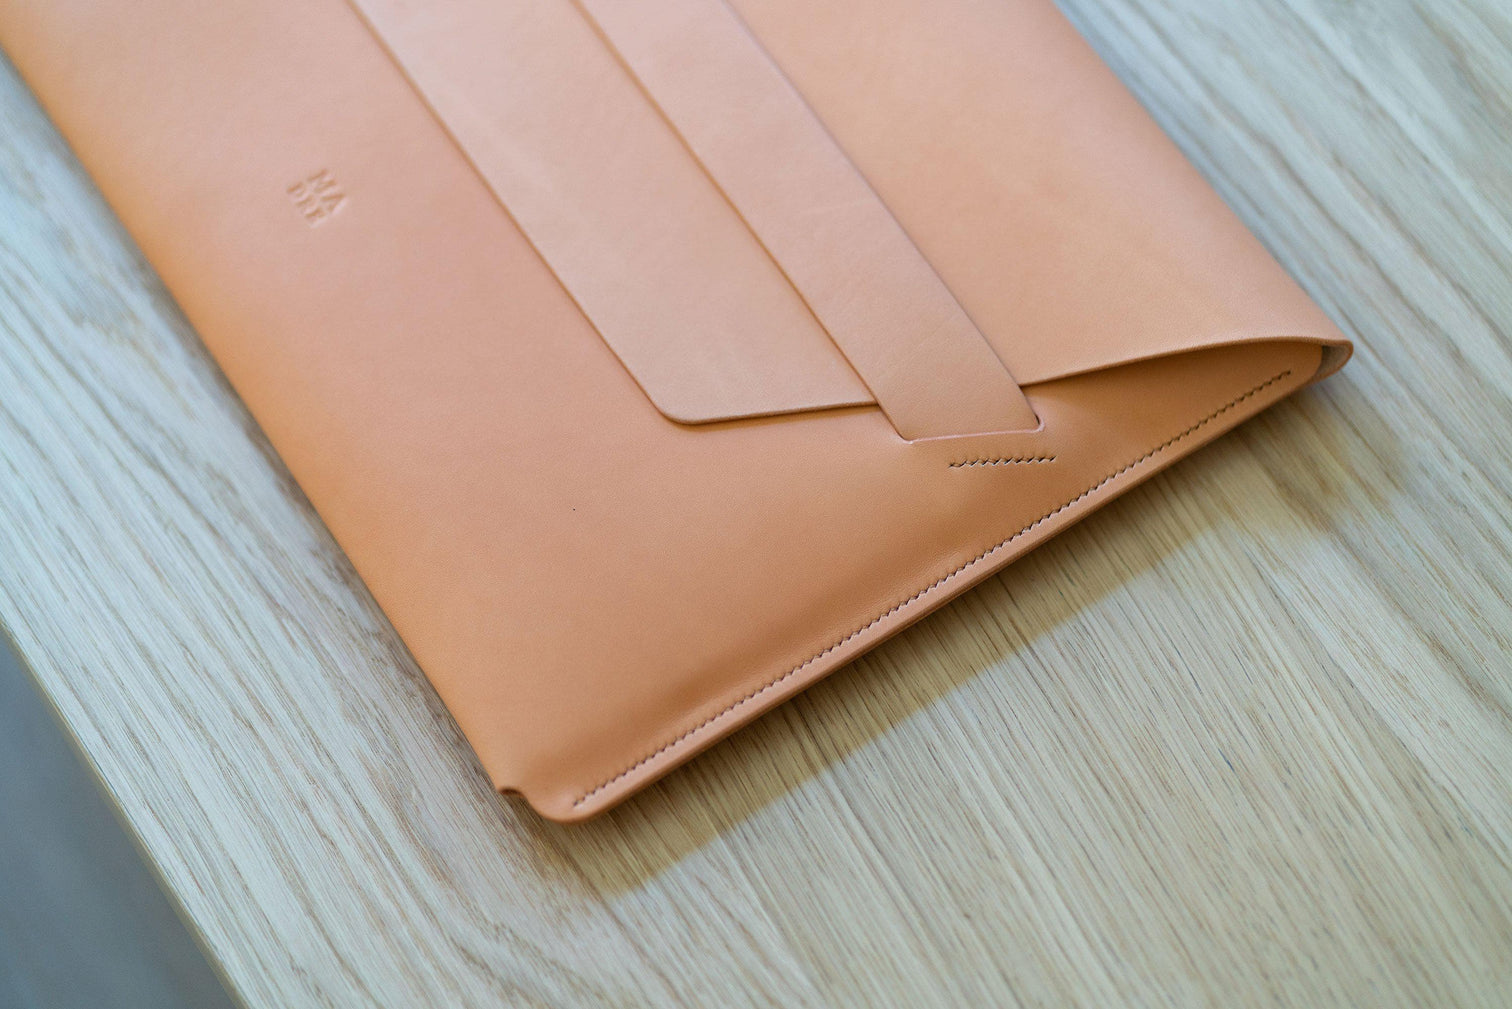 Leather Laptop Sleeve for Macbook Pro 13 Inch 2021 M1 ...